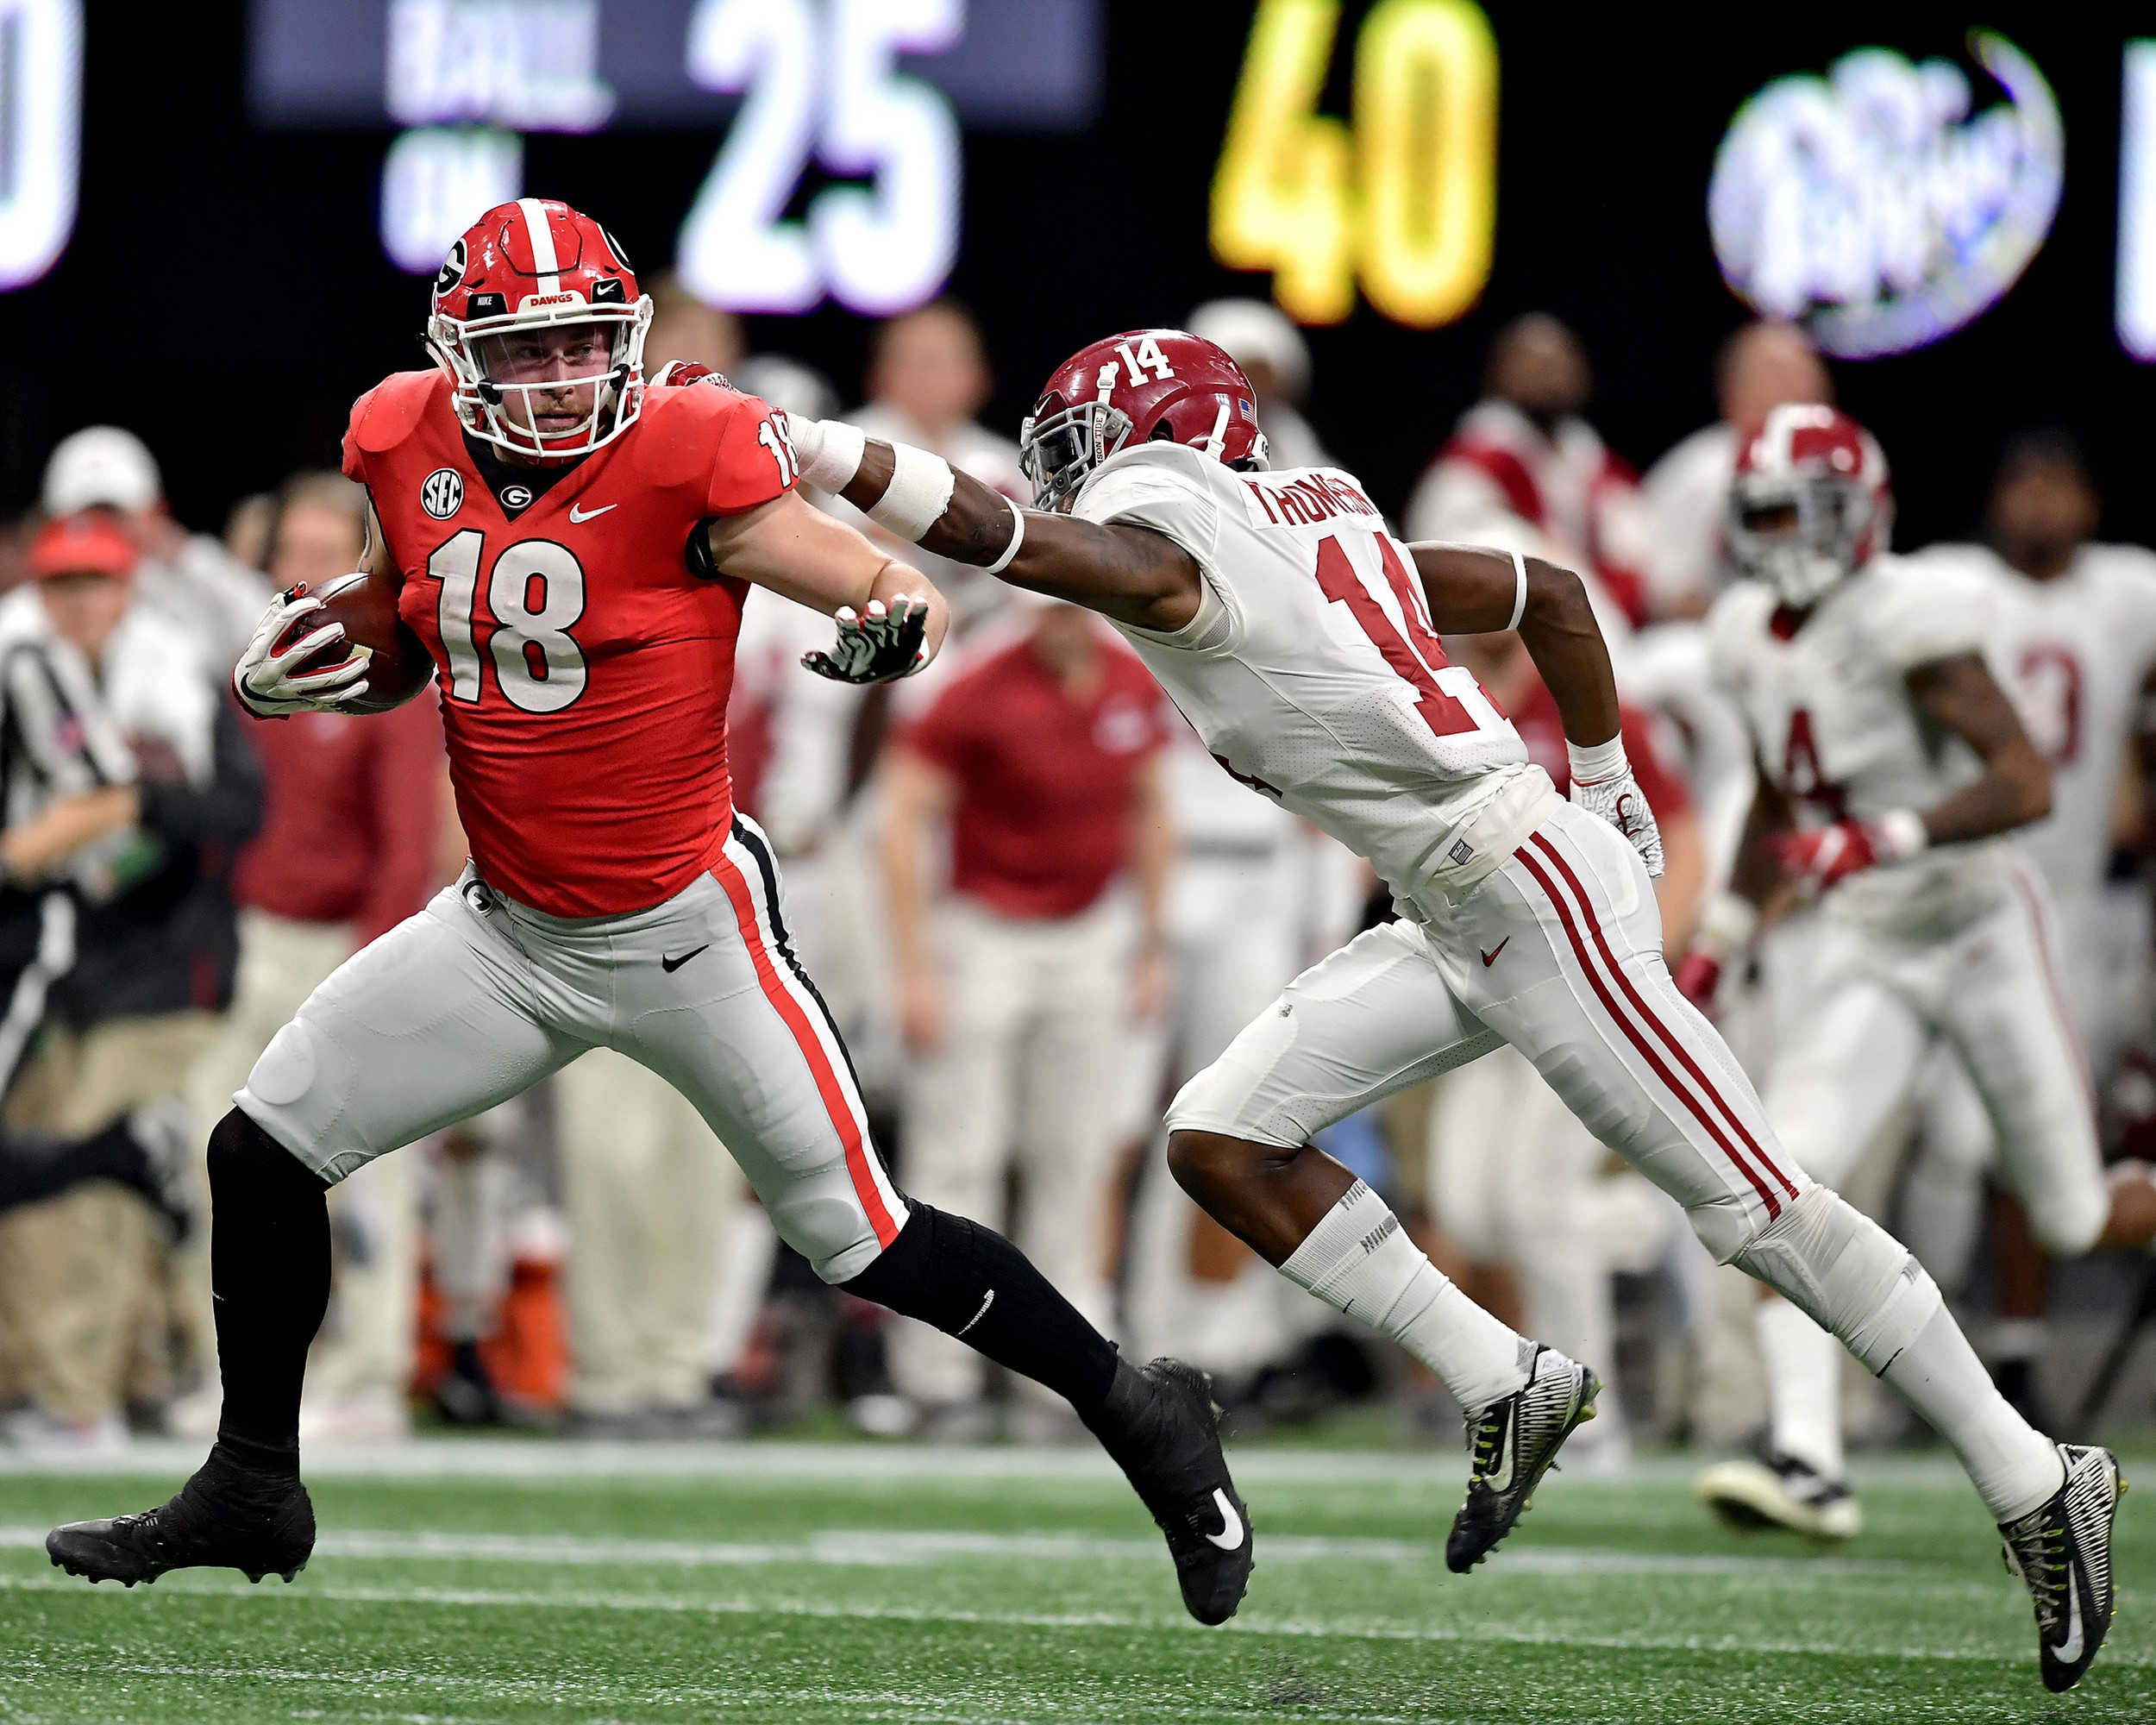 Georgia Bulldogs tight end Isaac Nauta (18) with a big catch and extra yards during the second half of the 2018 SEC Championship football game at Mercedes-Benz Stadium in Atlanta, Ga., on Dec. 1, 2018. Alabama wins 35-28. (Photo by Lee Walls)